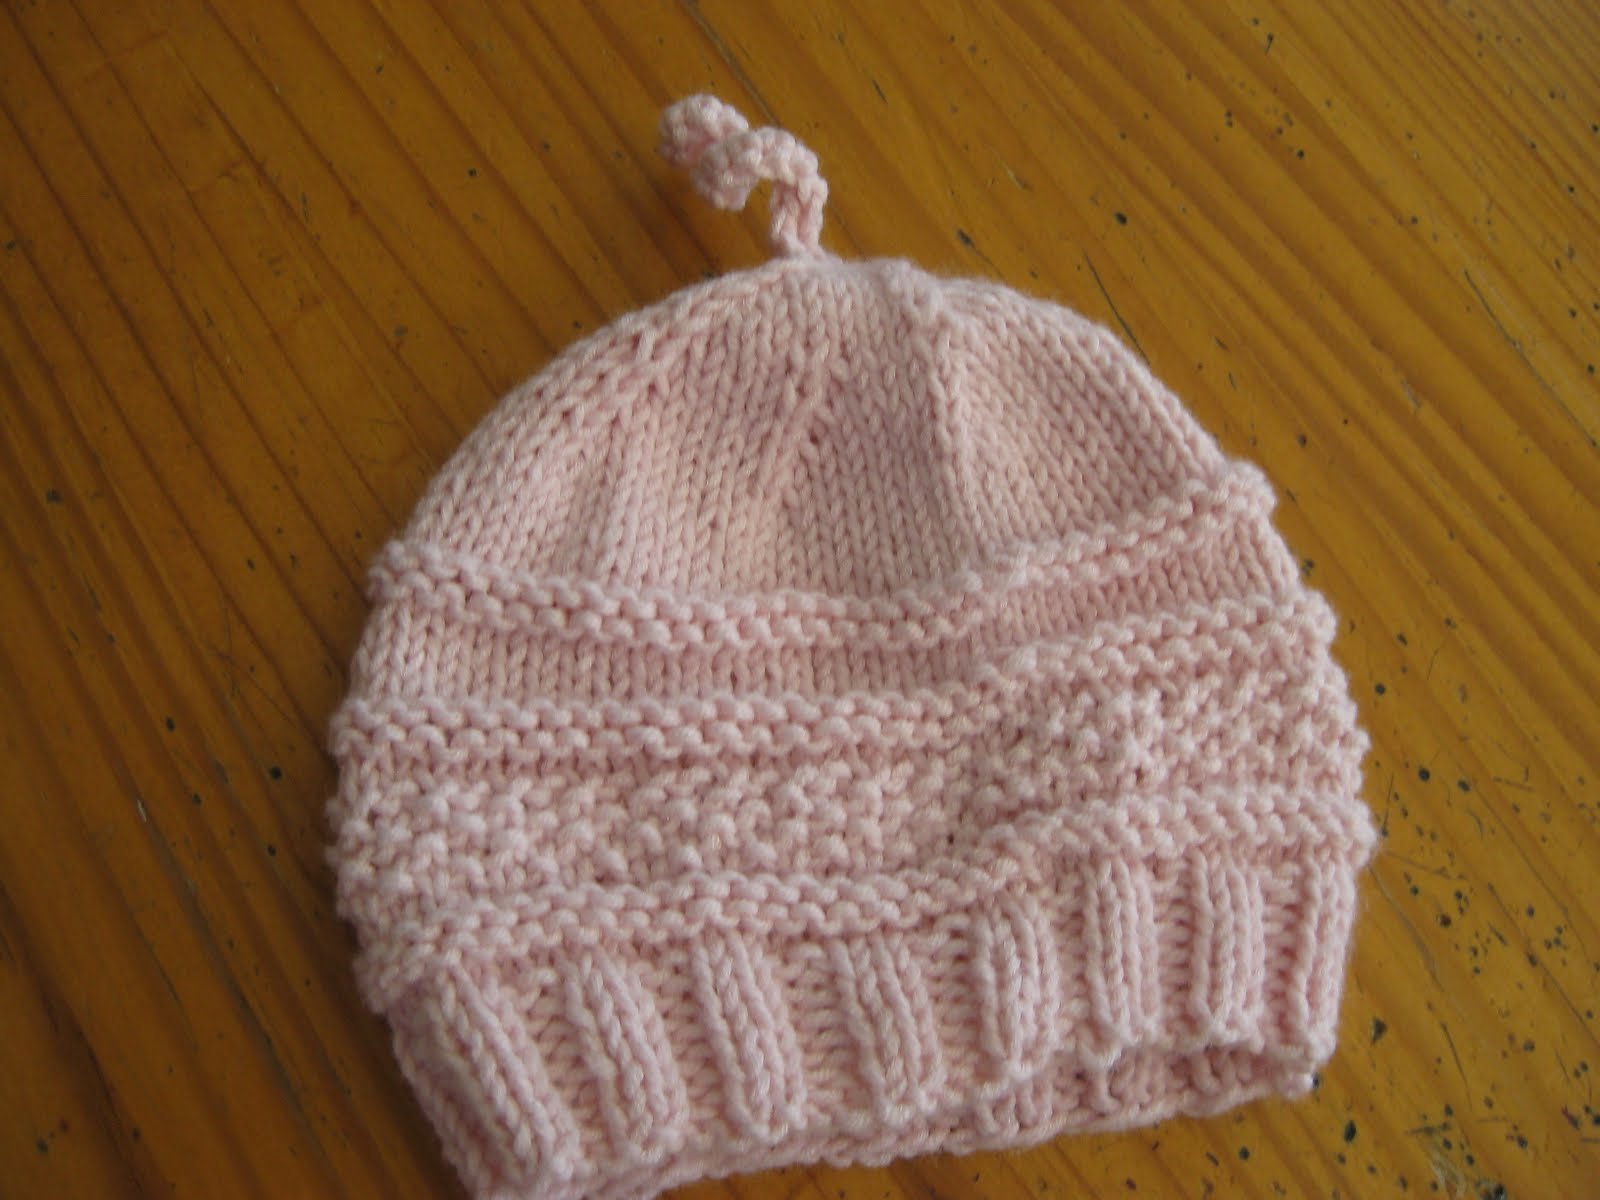 Knitted Infant Hat Patterns : knitting baby hats-Knitting Gallery